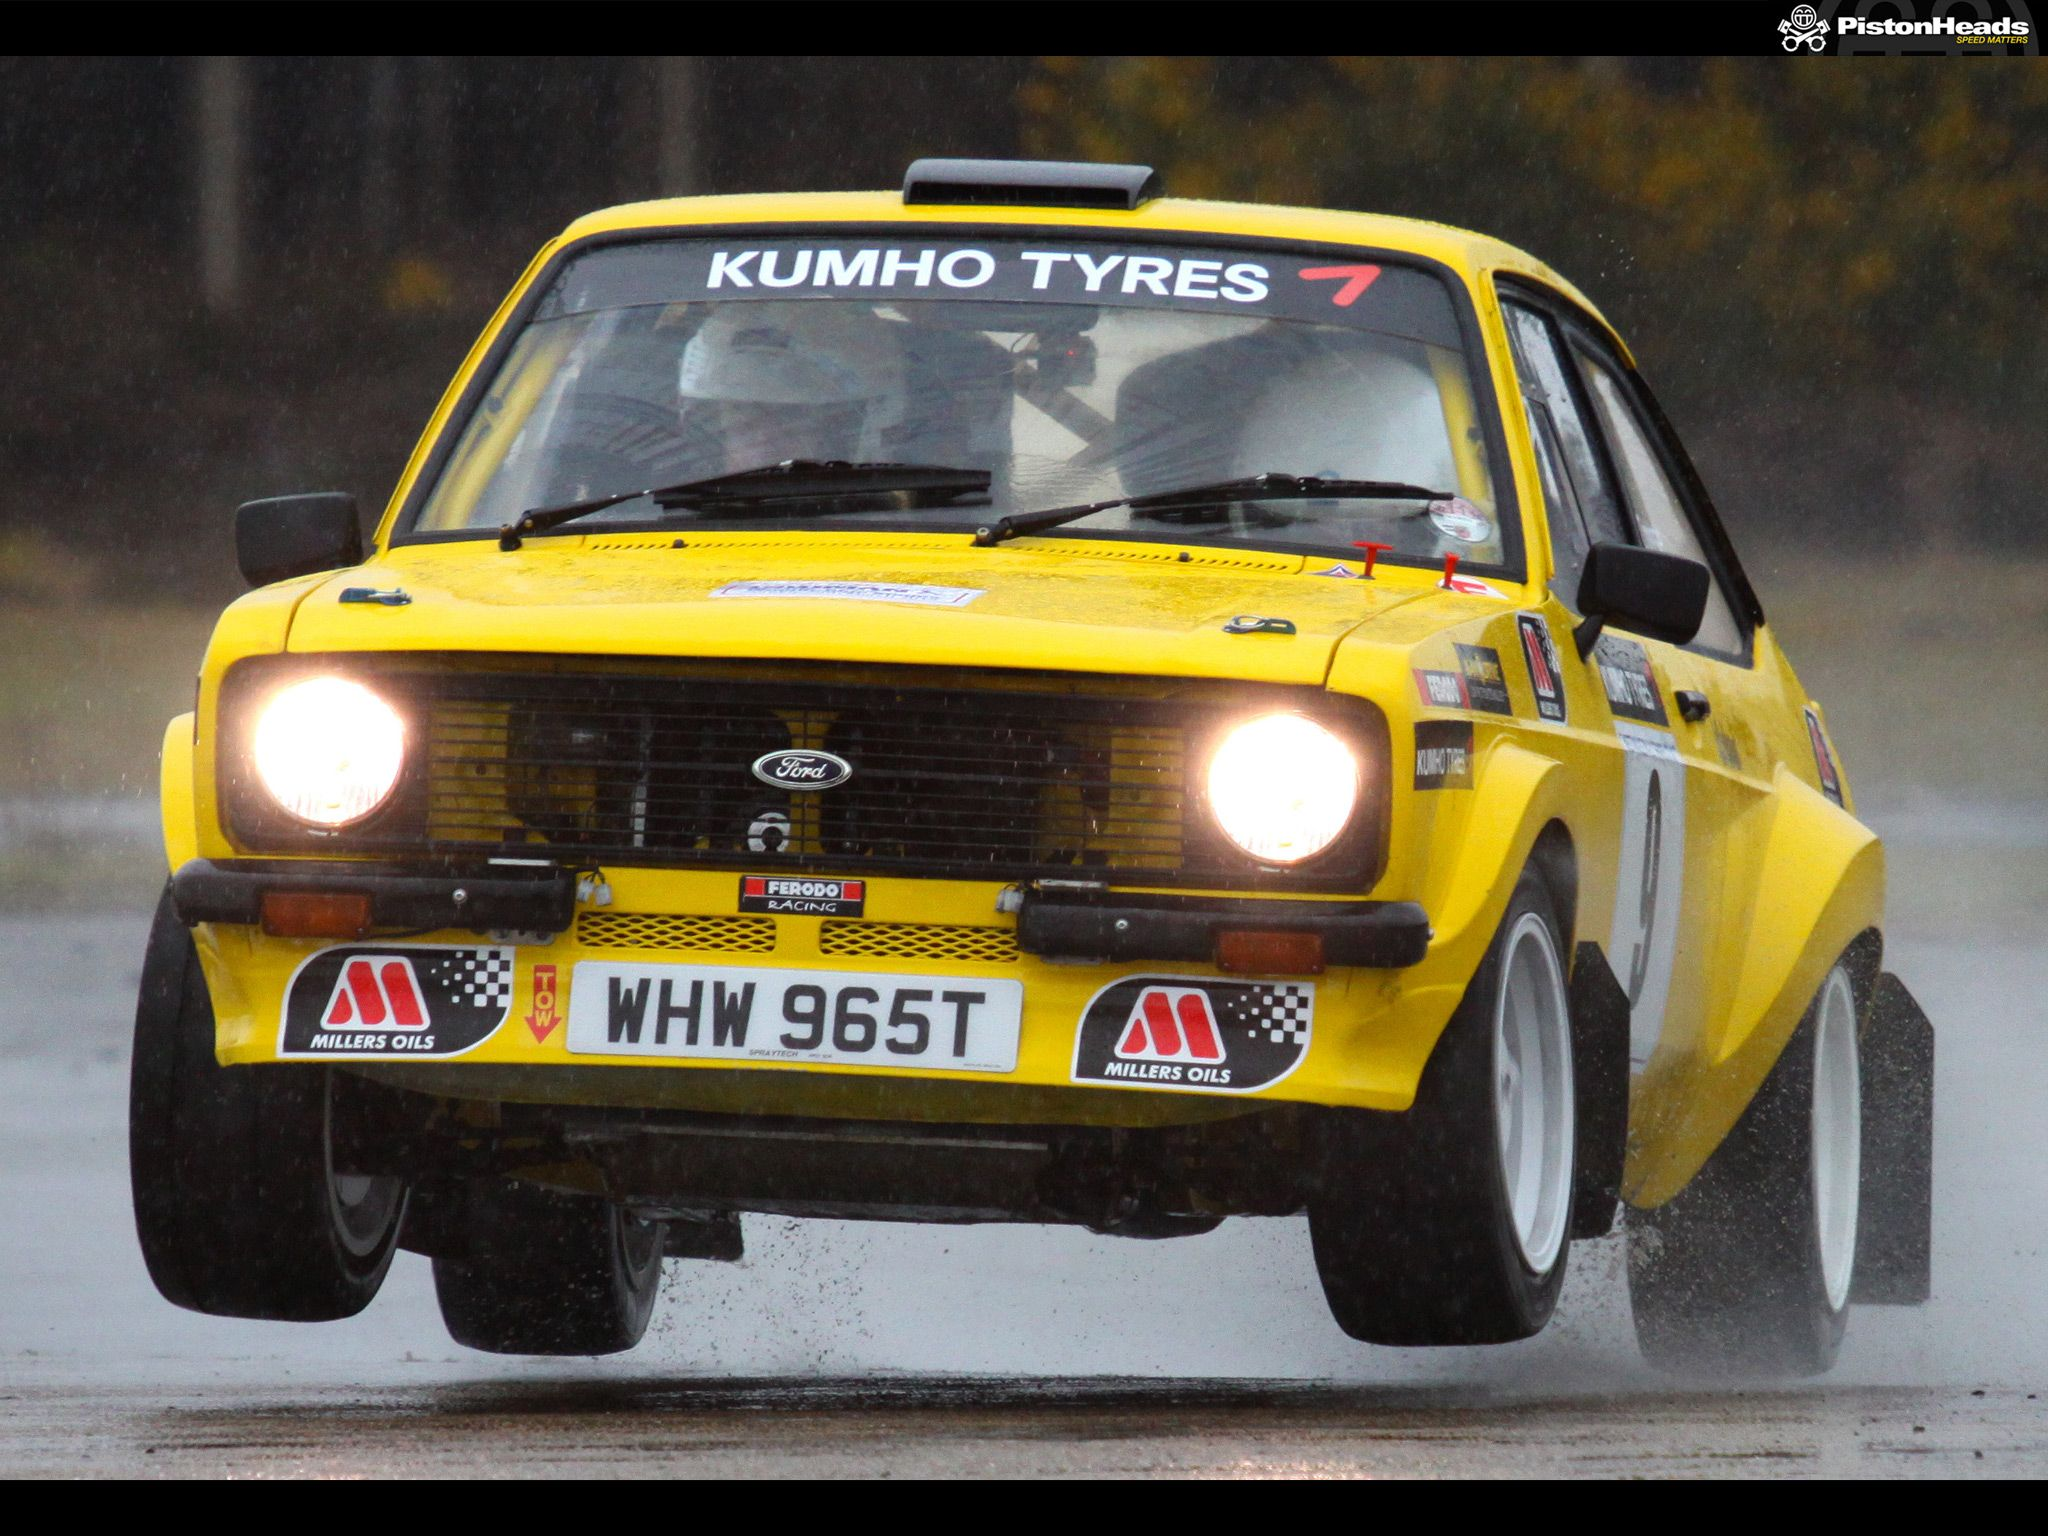 Ford Escort Mk2 Rally Car - Yellow Car | motorsport | Pinterest ...